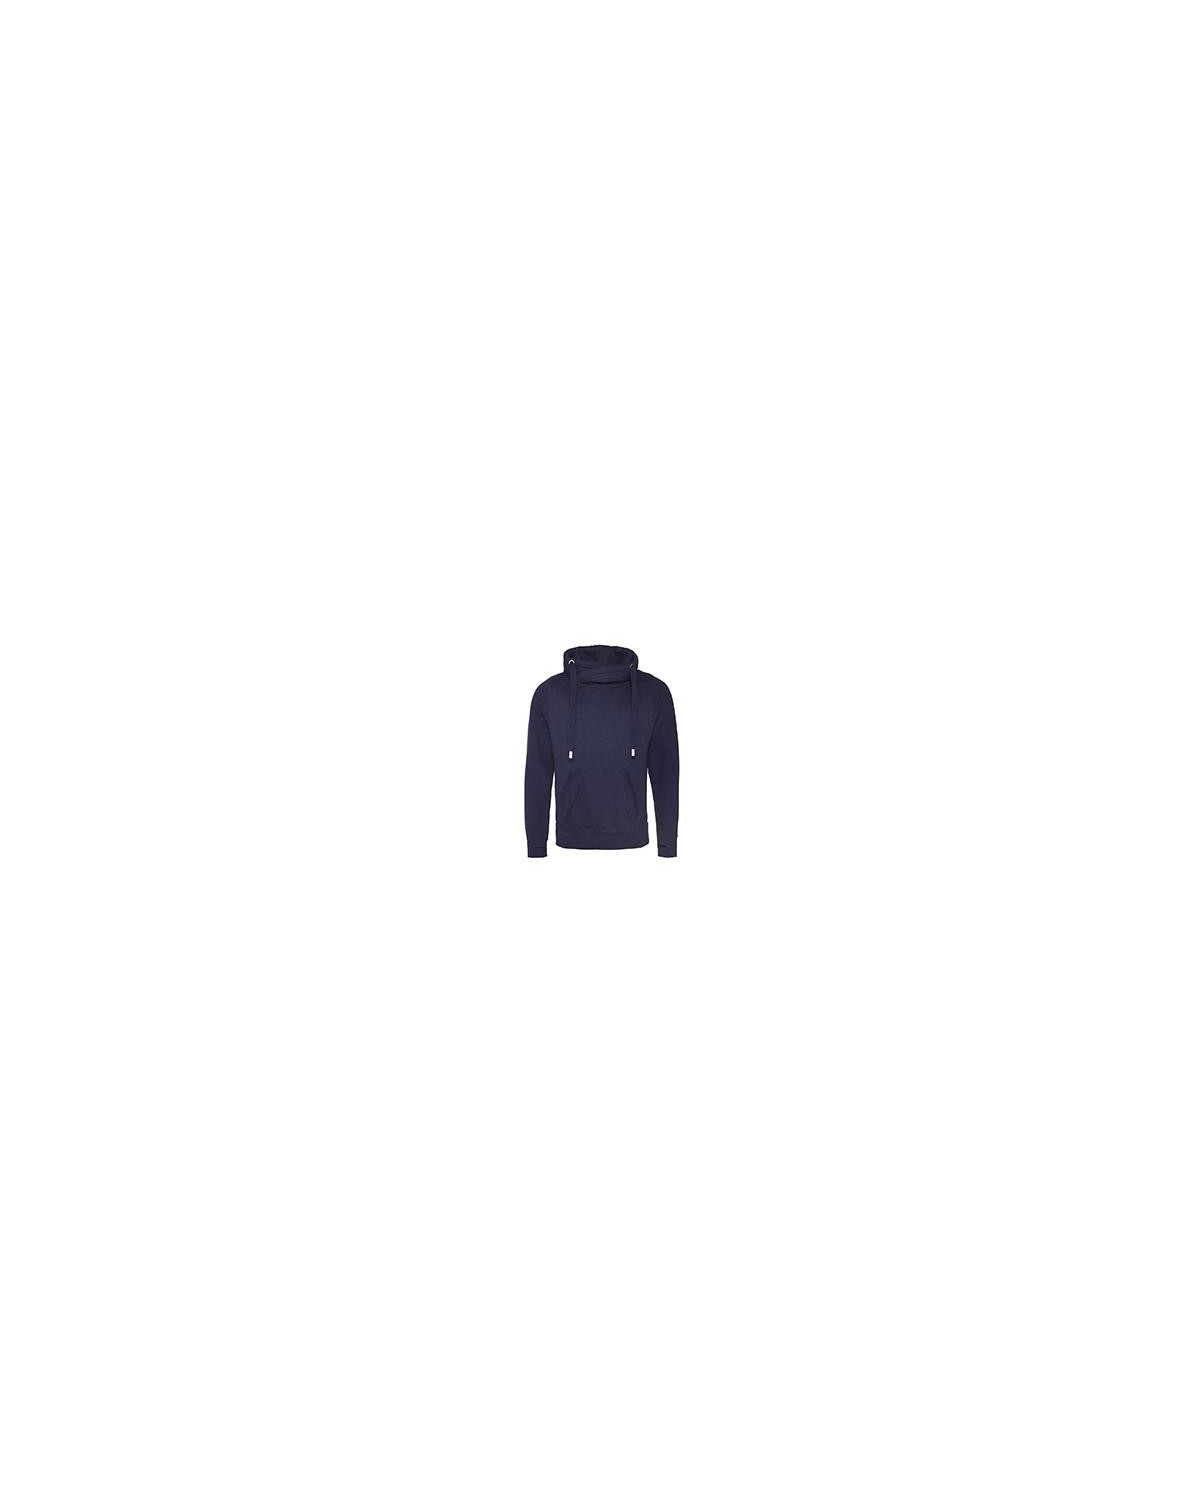 JHA021 Just Hoods By AWDis OXFORD NAVY